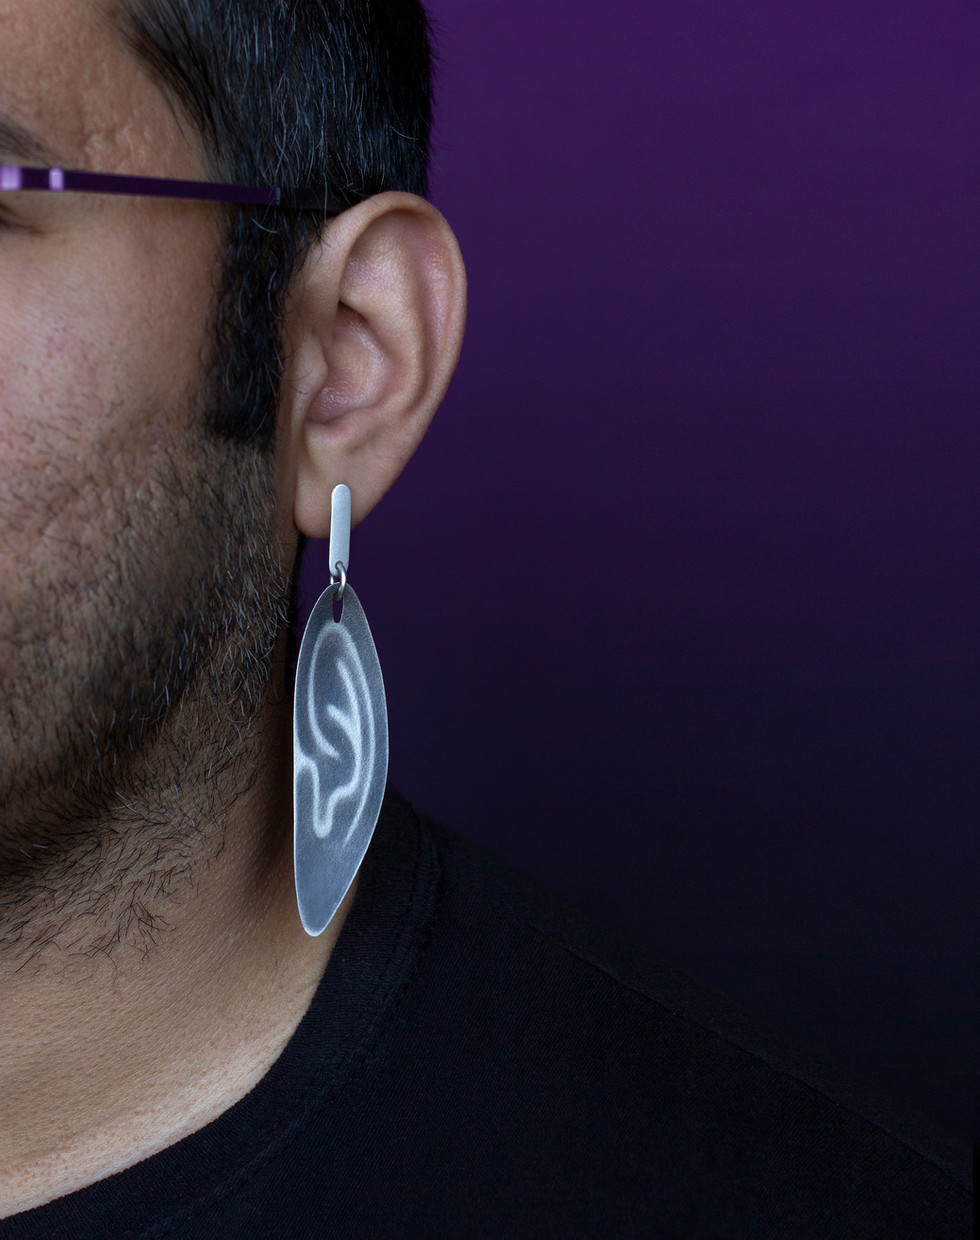 Stretched Ear Earring Cropped.jpg